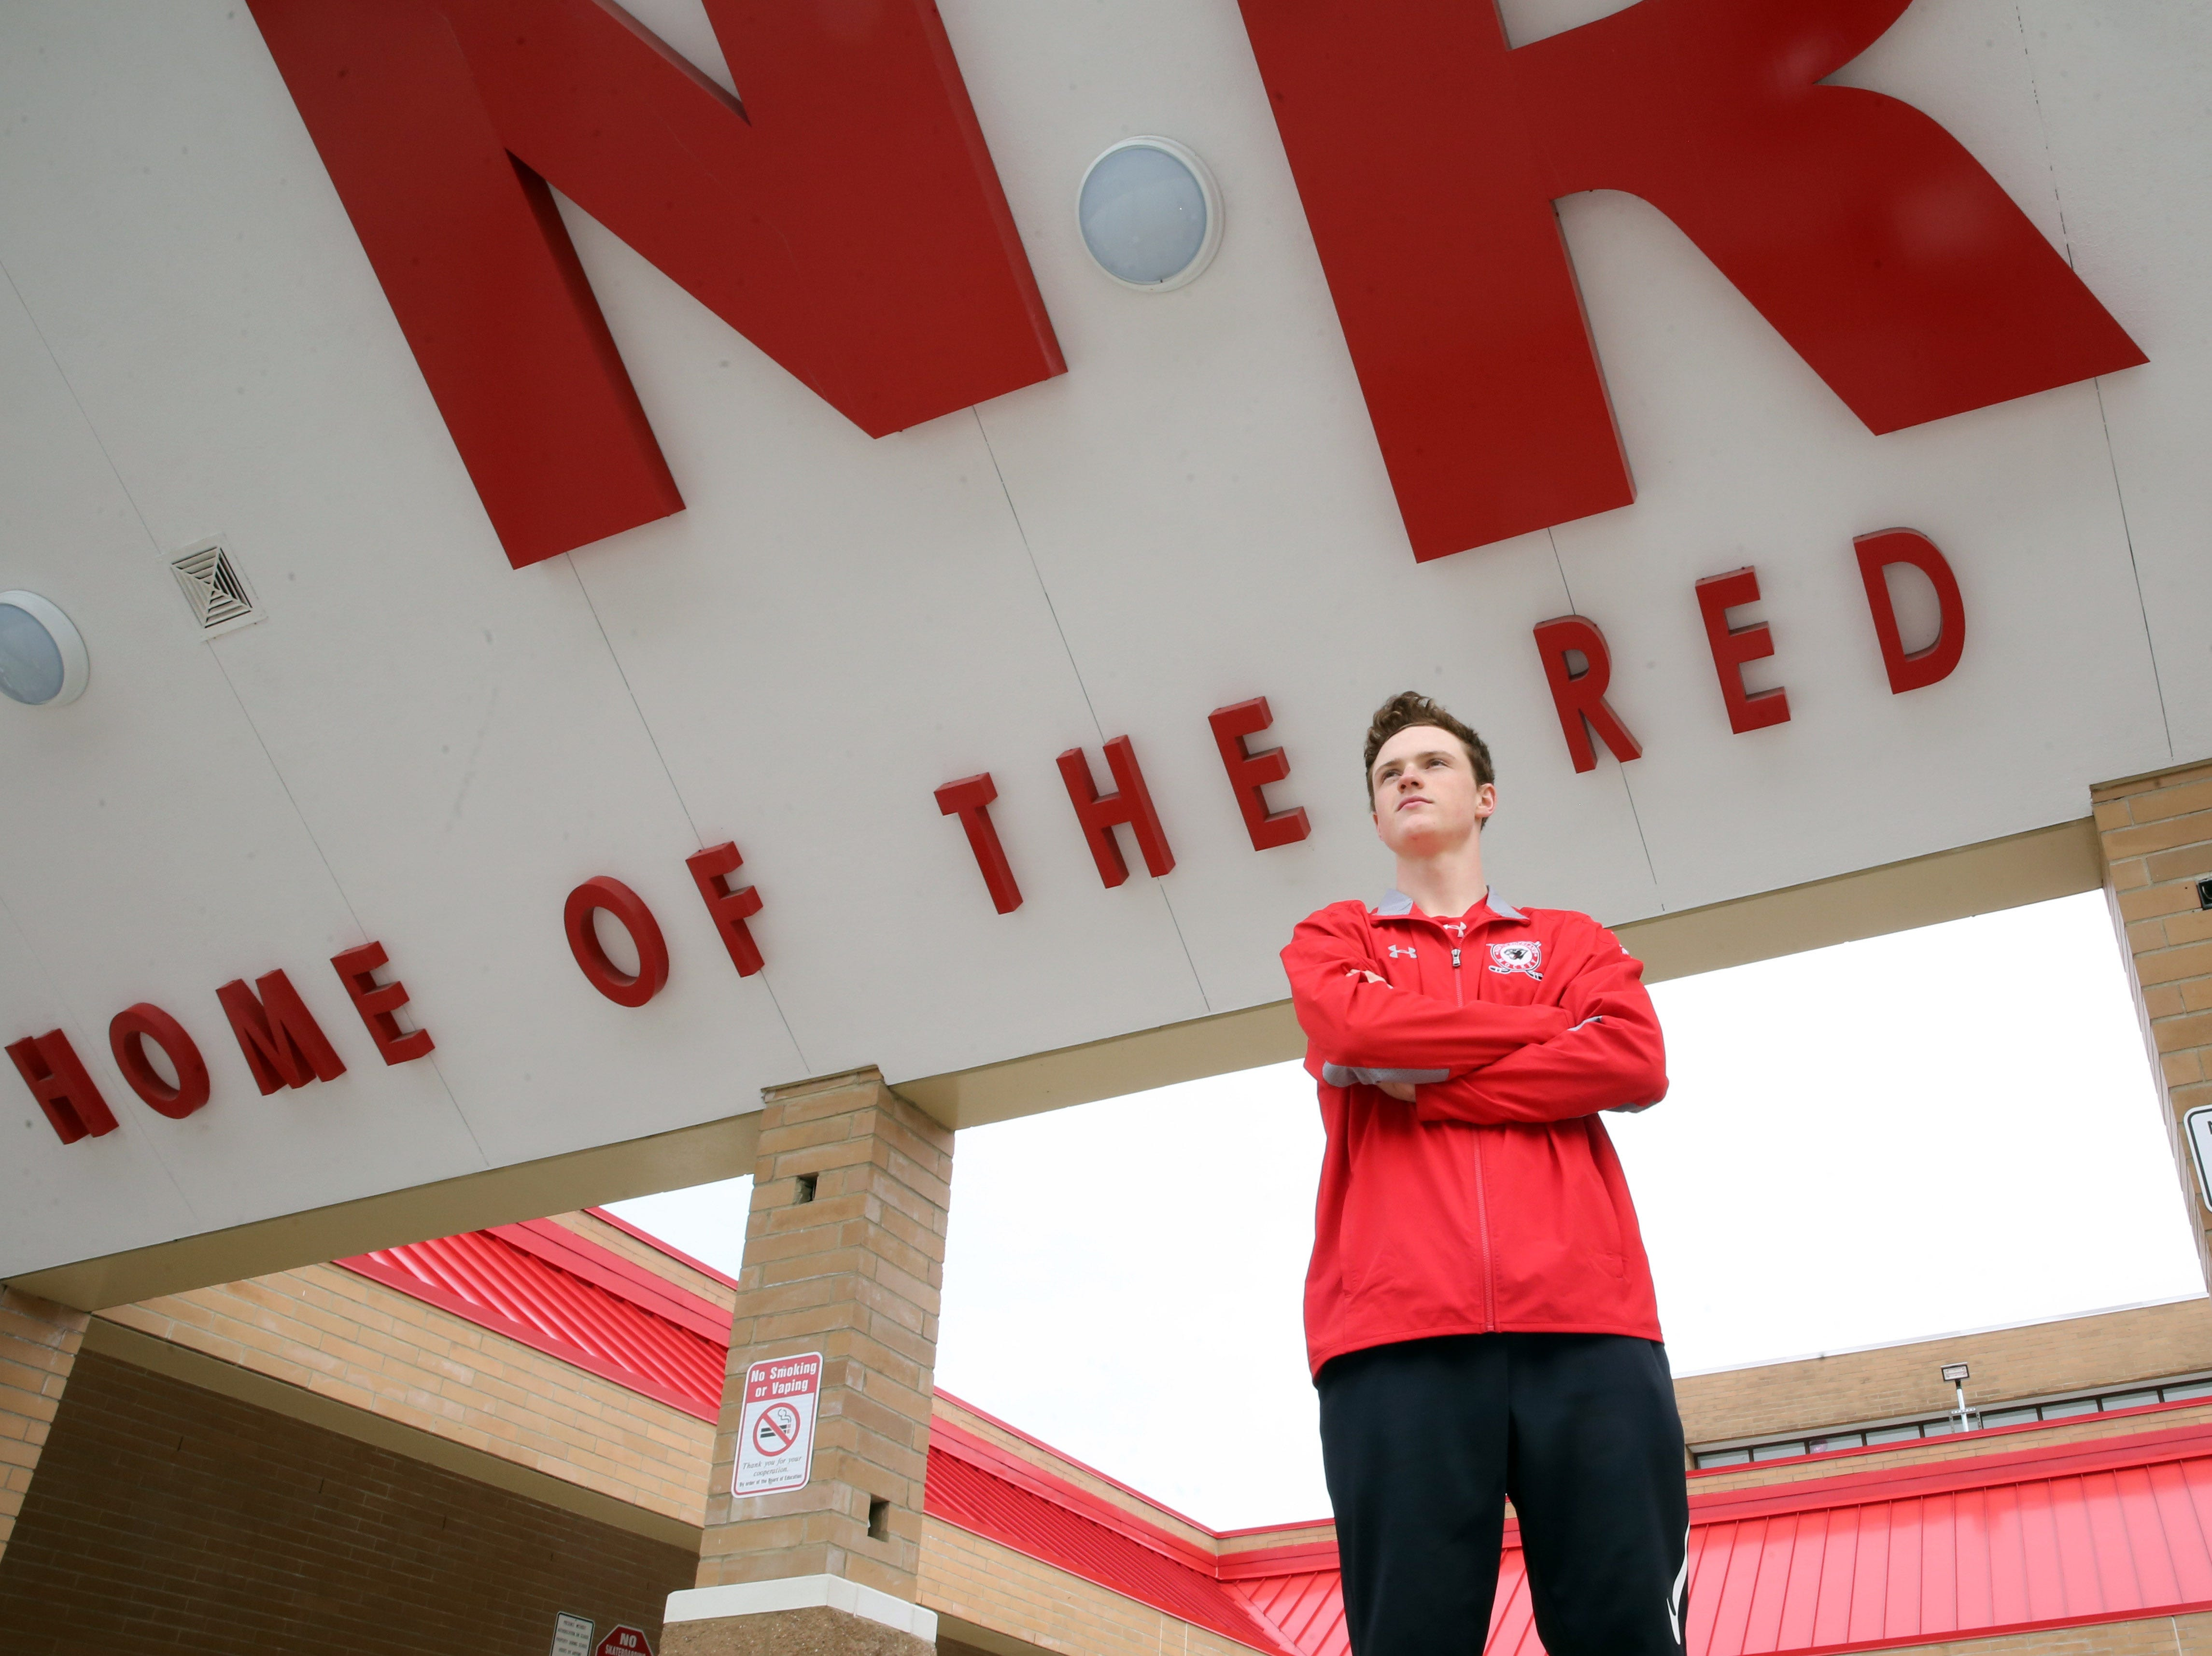 TJN hockey player of the year John Gormley was photographed at North Rockland High School on March 28, 2018.